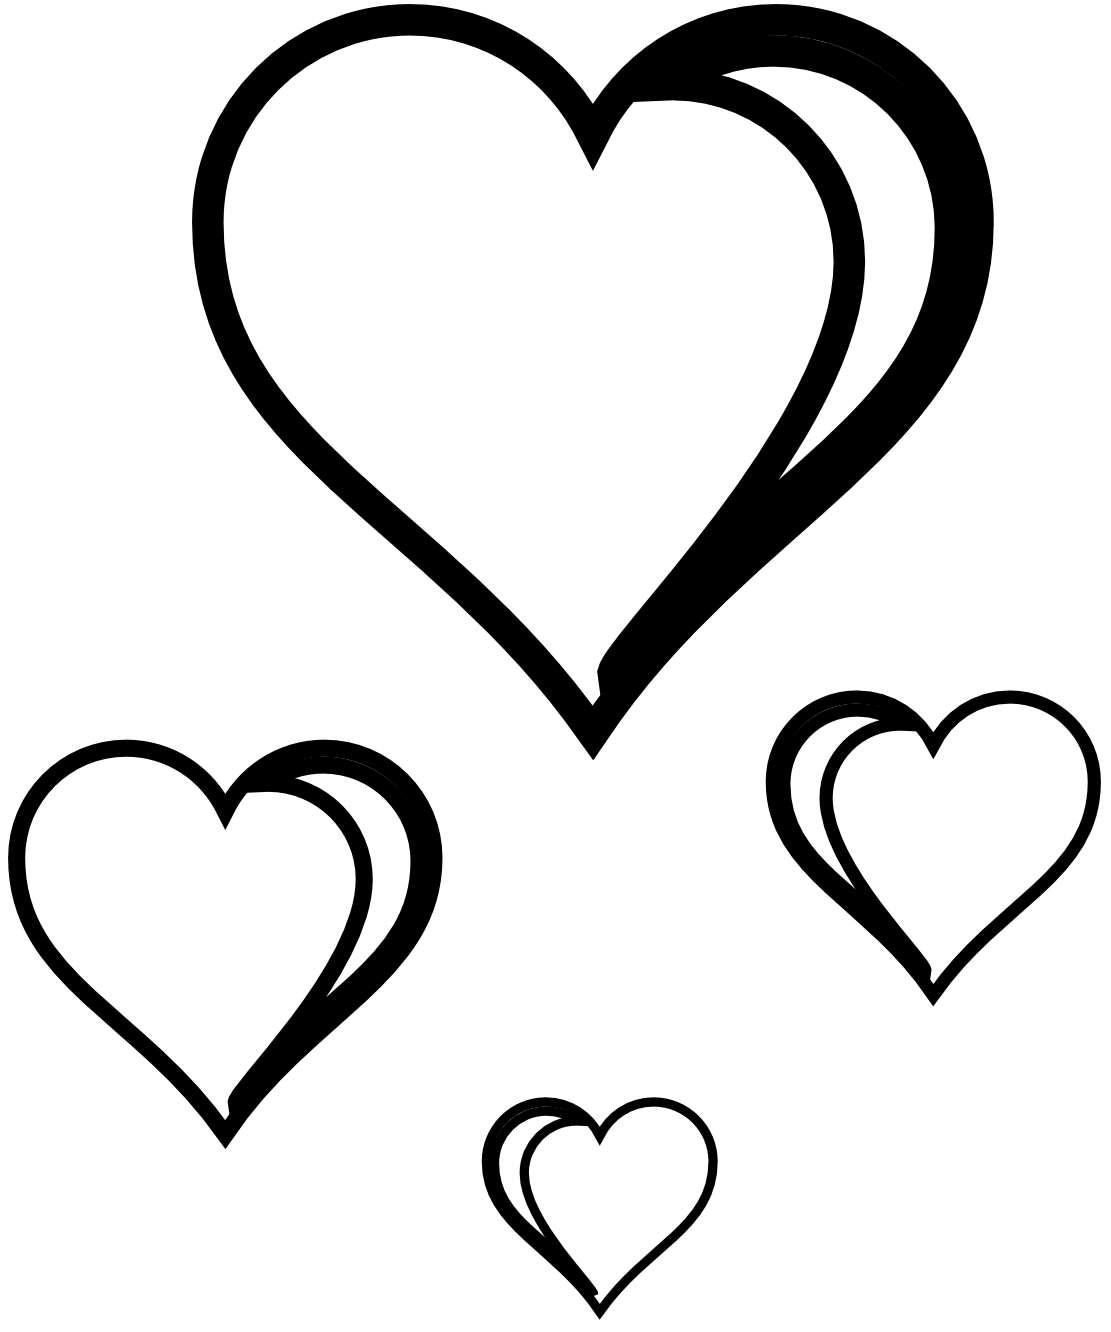 Hearts outline free download best hearts outline on clipartmag 1111x1332 hearts clipart black and white buycottarizona Image collections